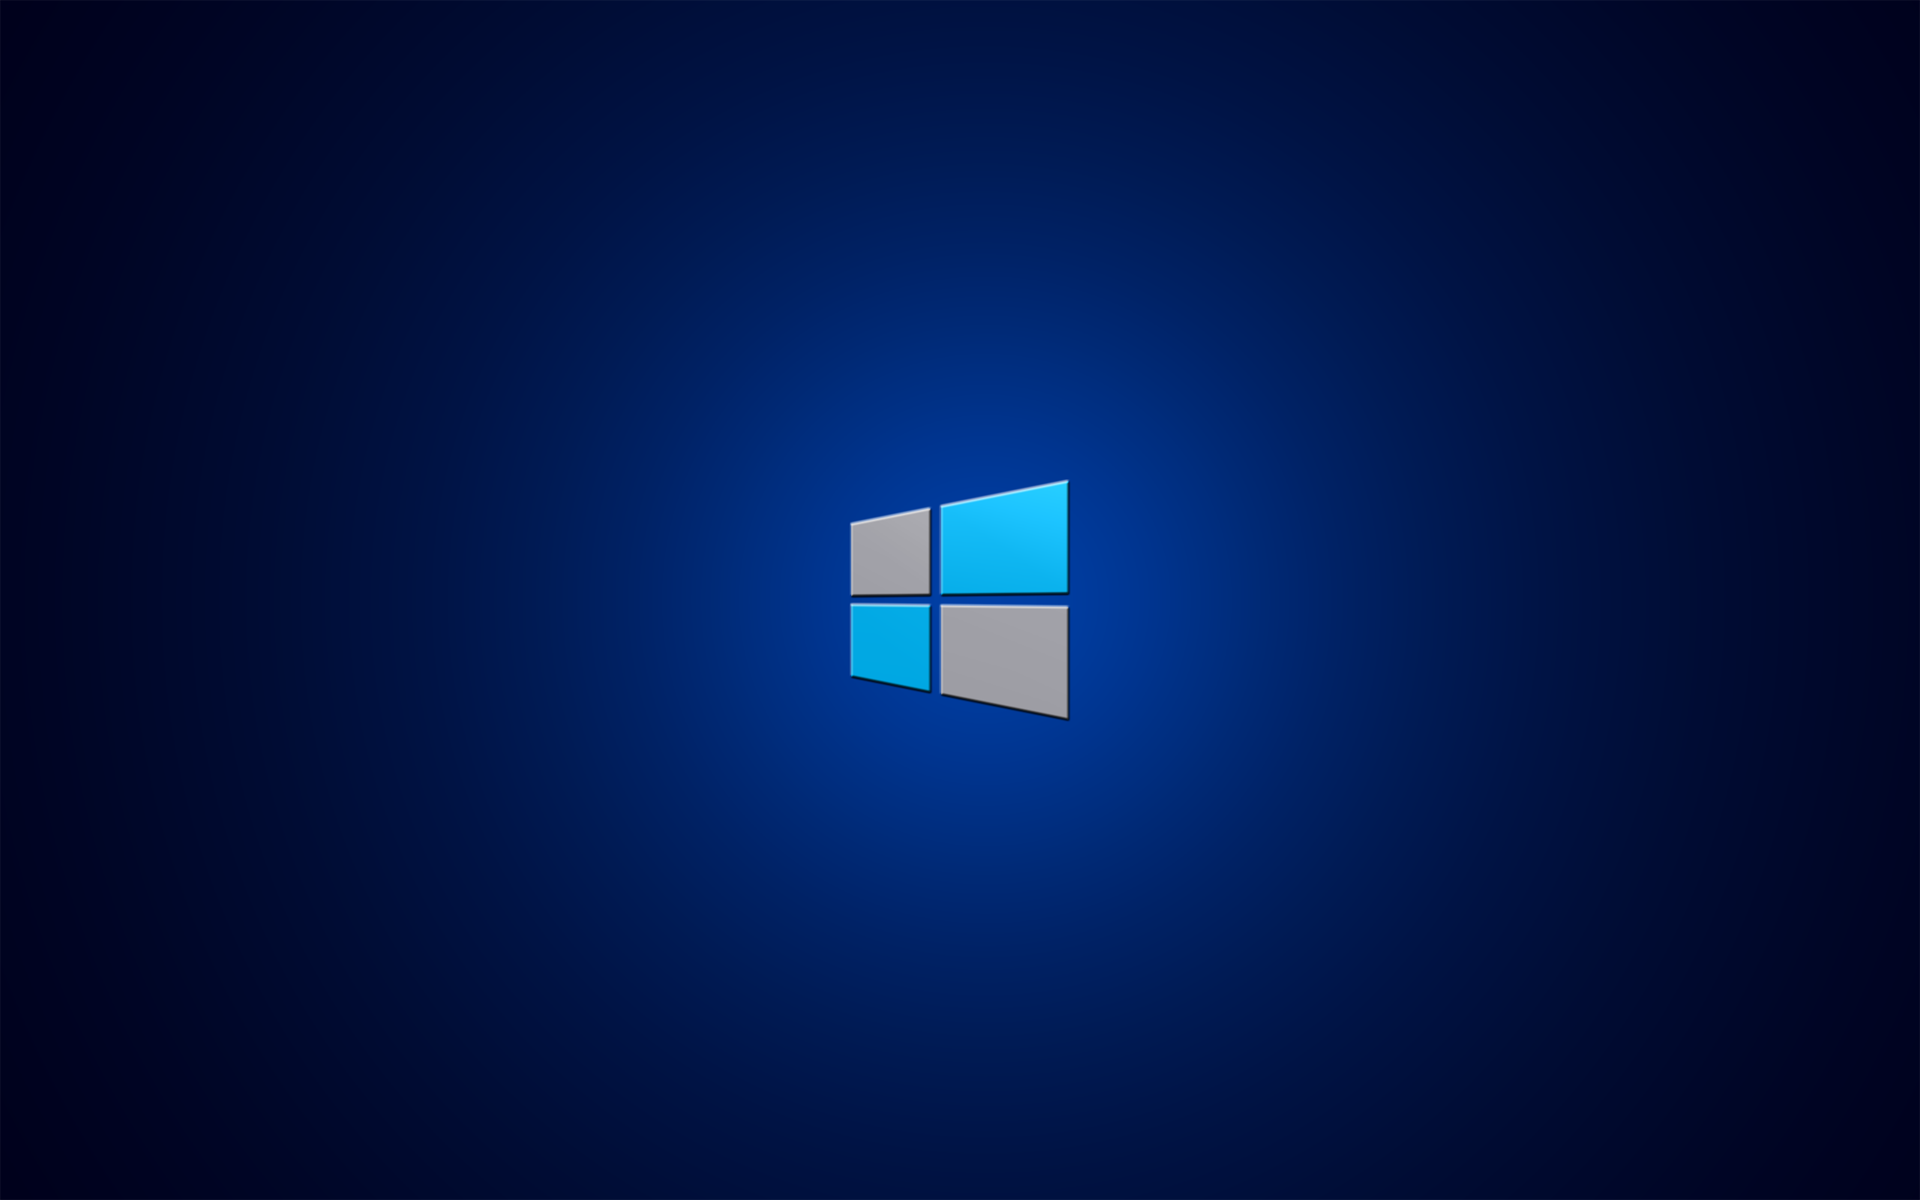 Windows 8 Dark Blue Wallpaper Windows Wallpaper Wallpaper Windows 10 Windows Desktop Wallpaper